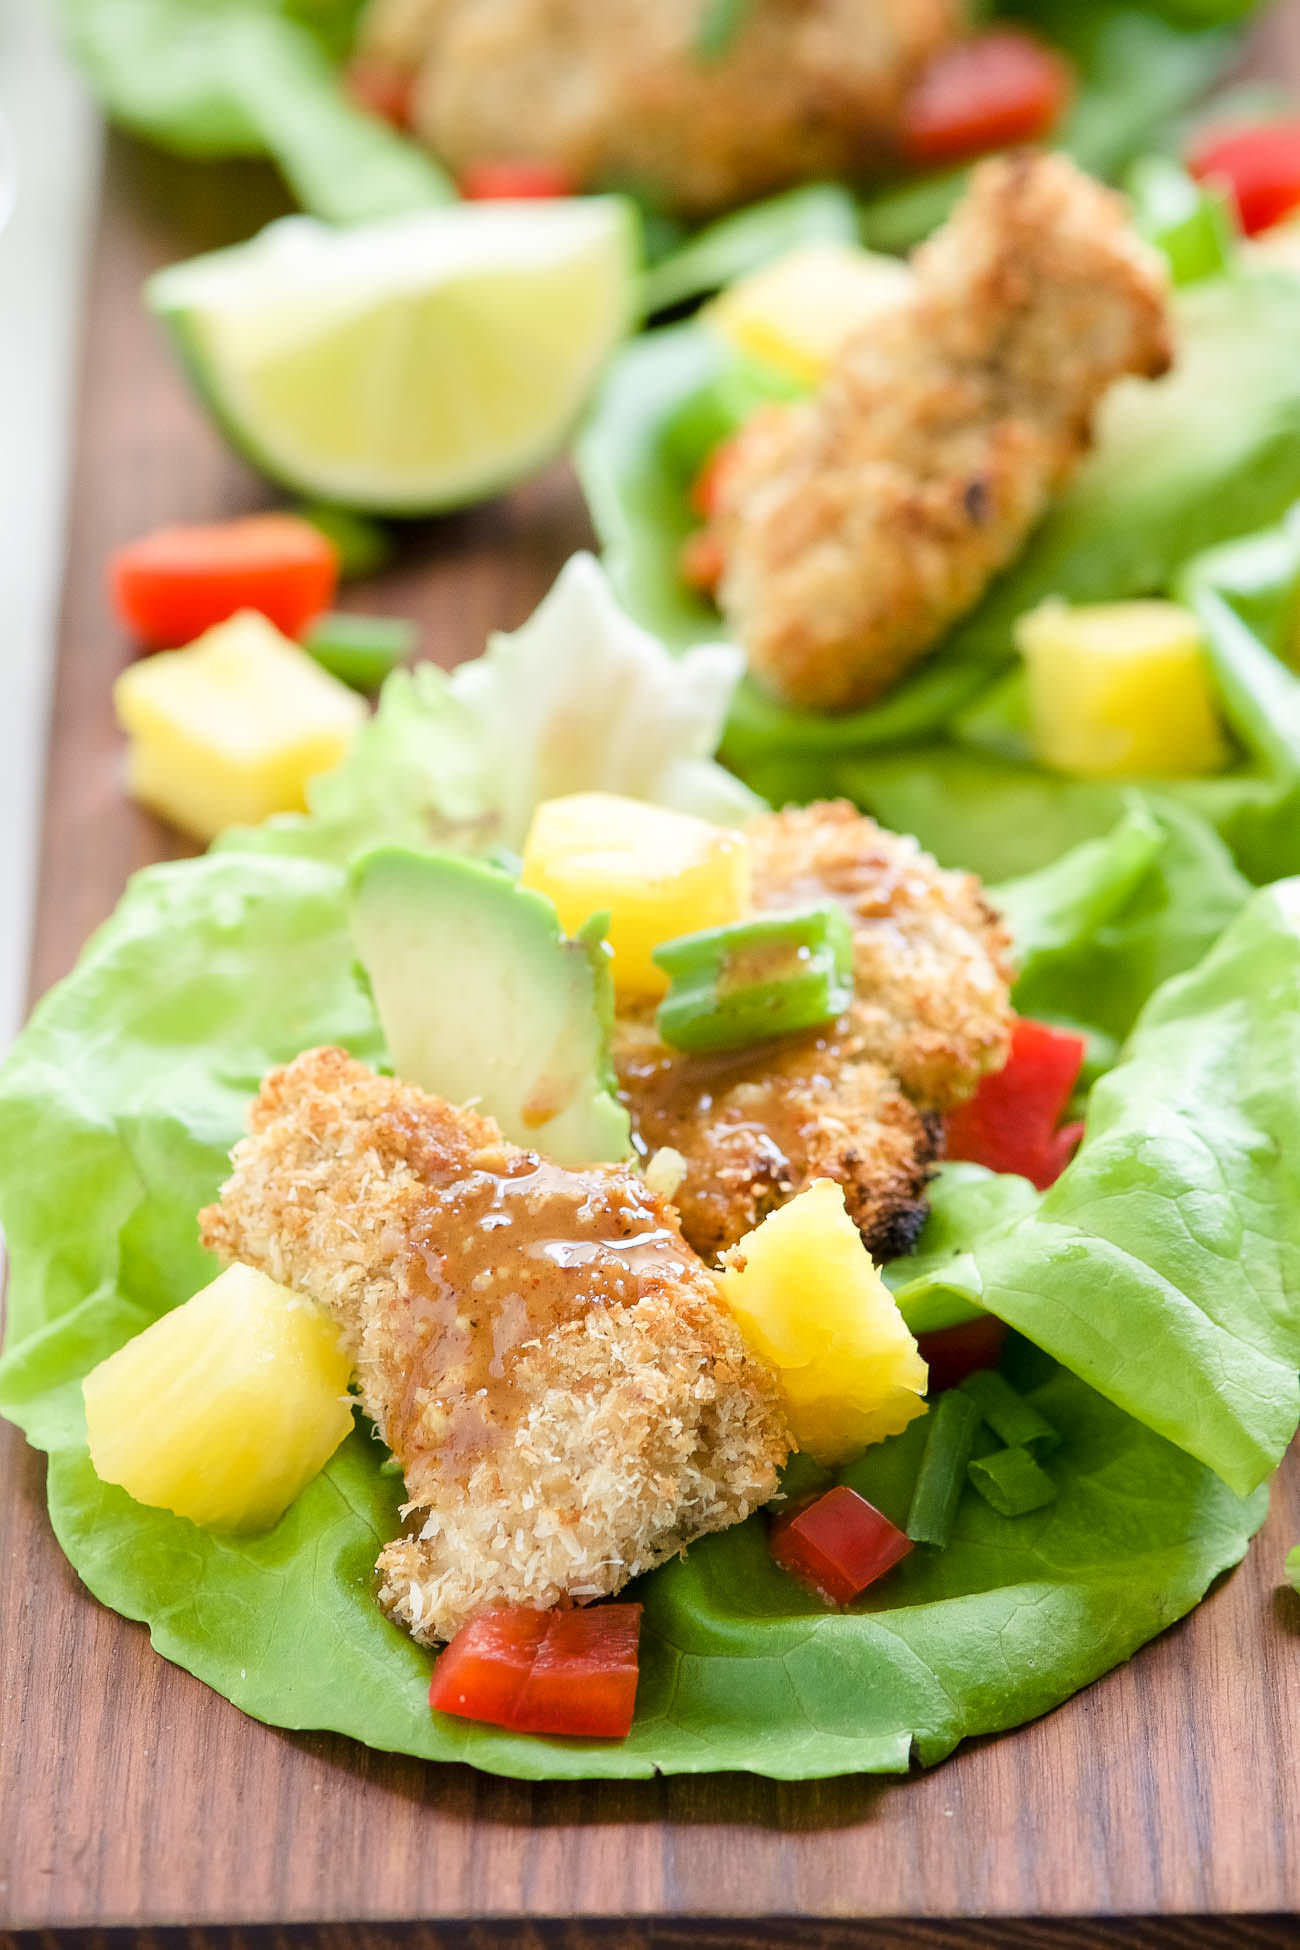 Cashew Coconut Crusted Chicken Lettuce Wraps with Ancho Honey Mustard Sauce